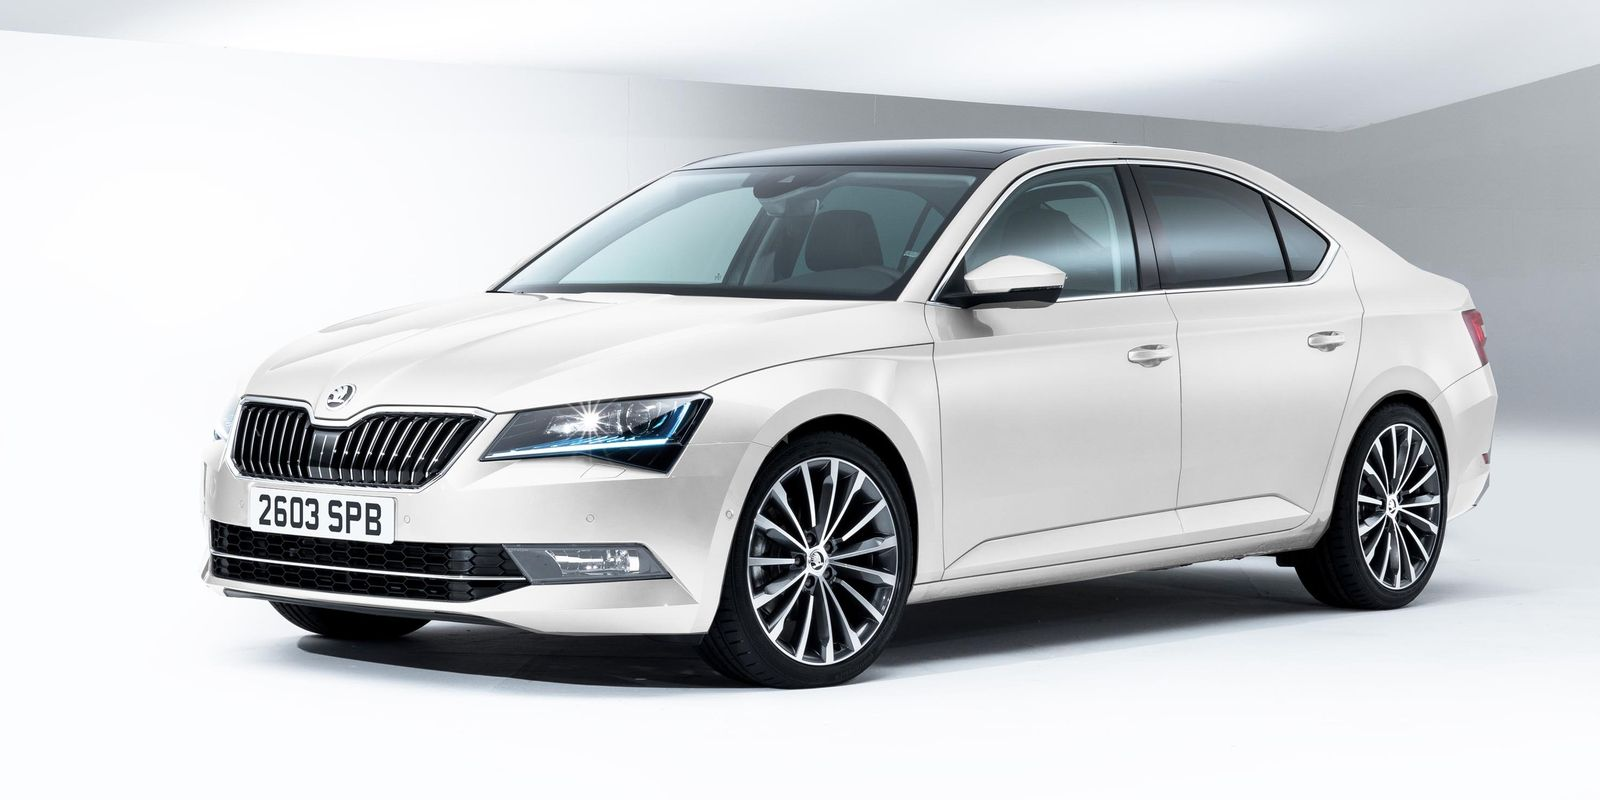 2017 Skoda Superb Review Specs And Price >> Skoda Superb Review A Smart Large Hatchback With Limo Levels Of